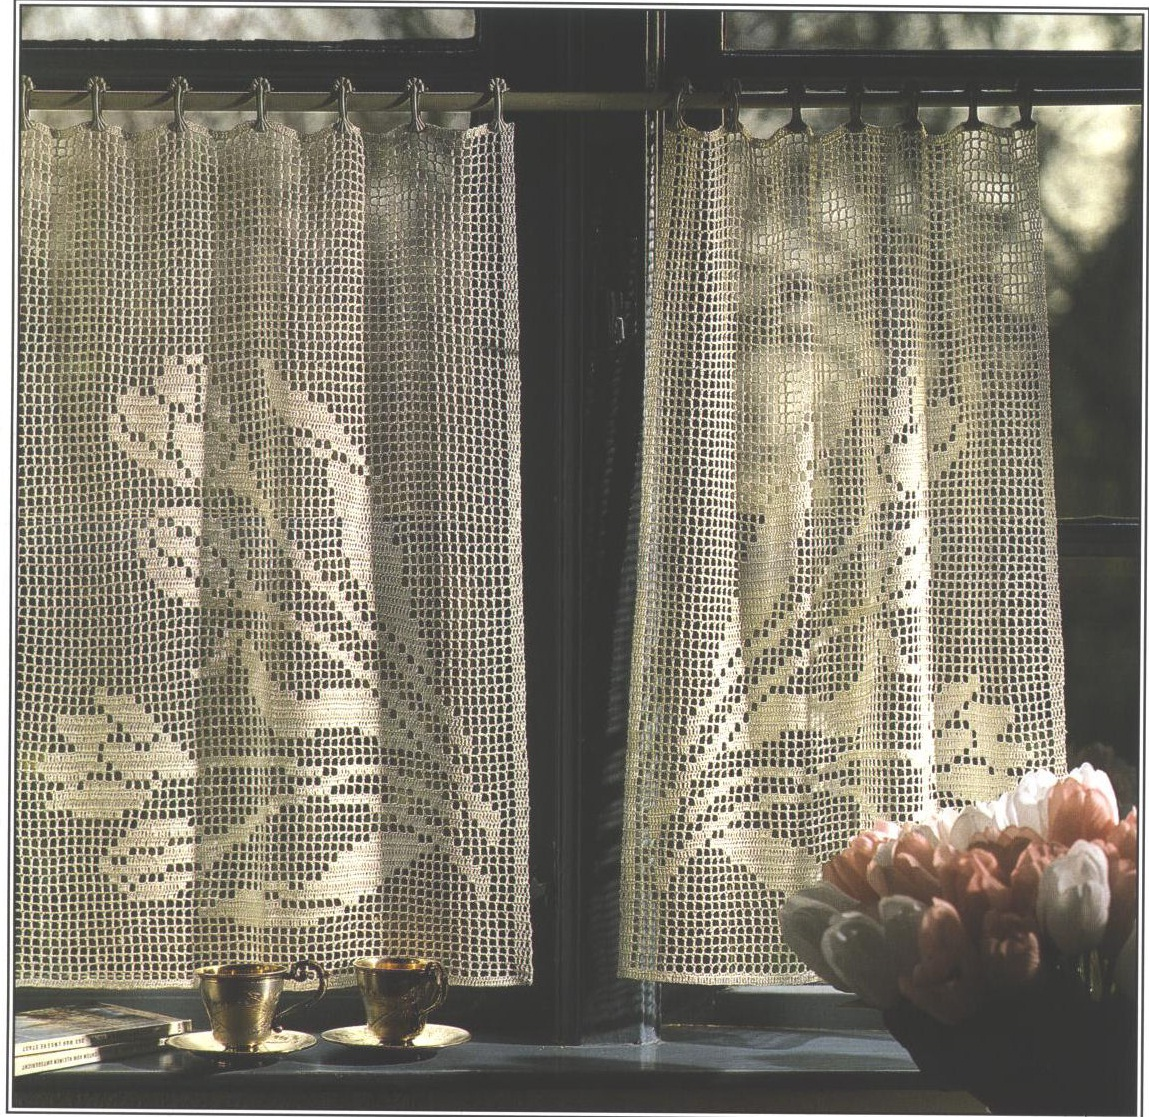 Crocheted Curtains - Sue's Crochet and Knitting - Supplies, Yarn